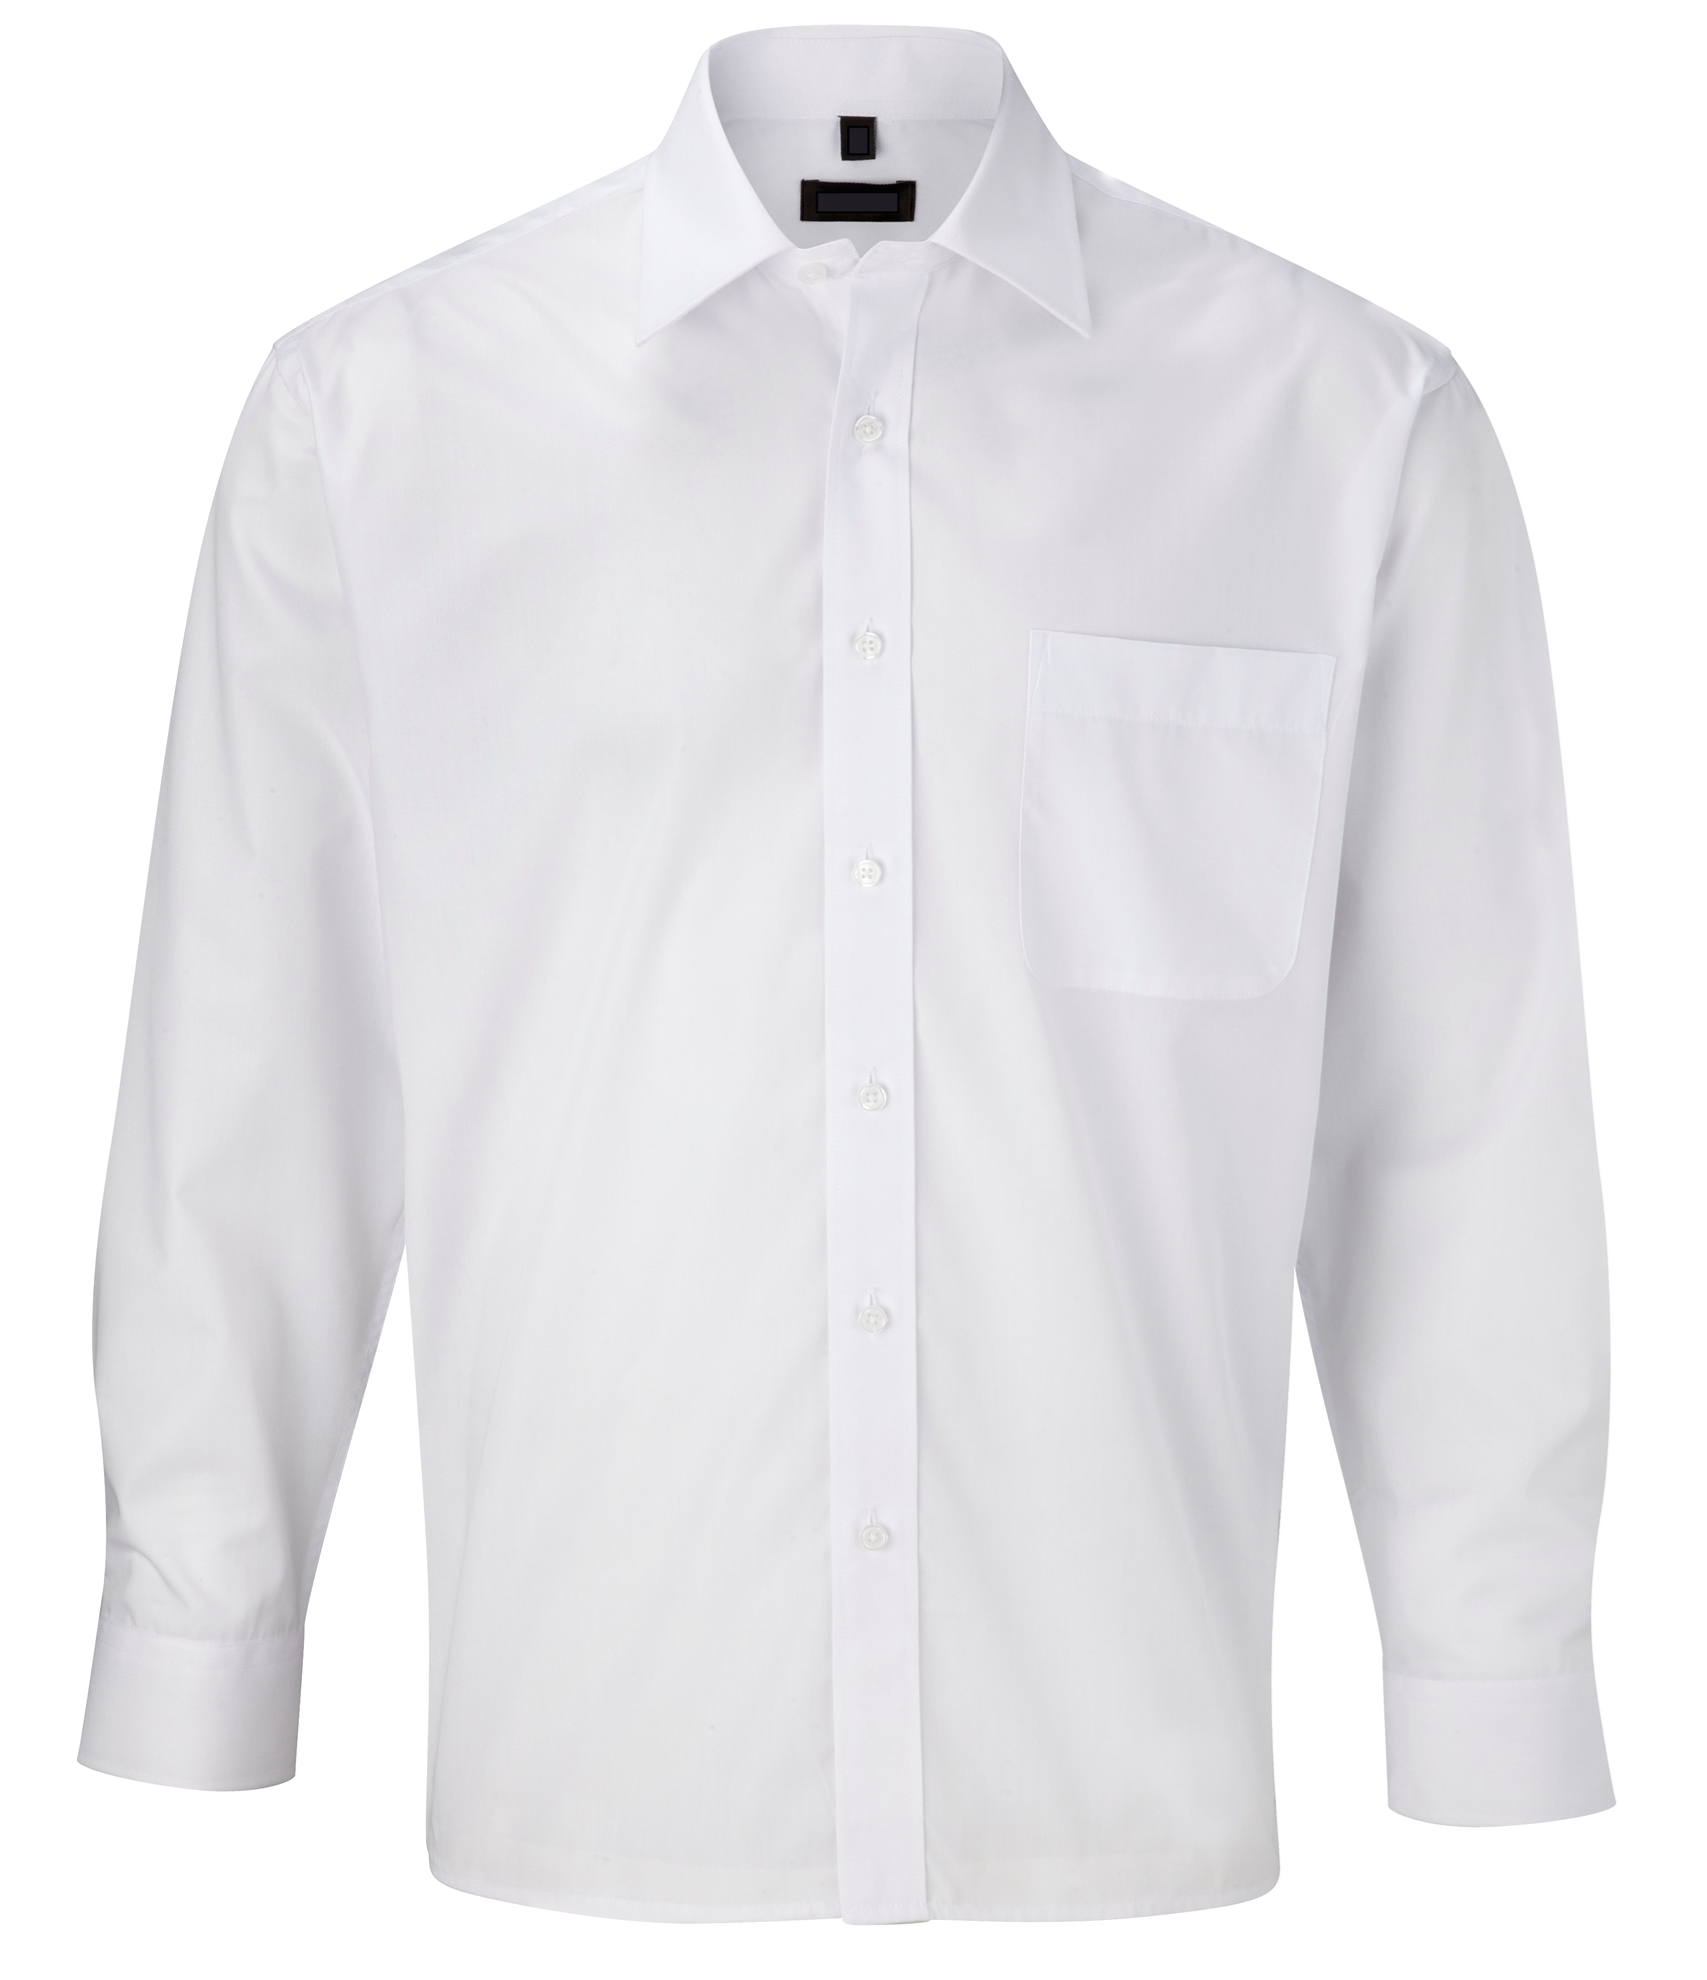 Picture of Male Long Sleeve Shirt - Plain White